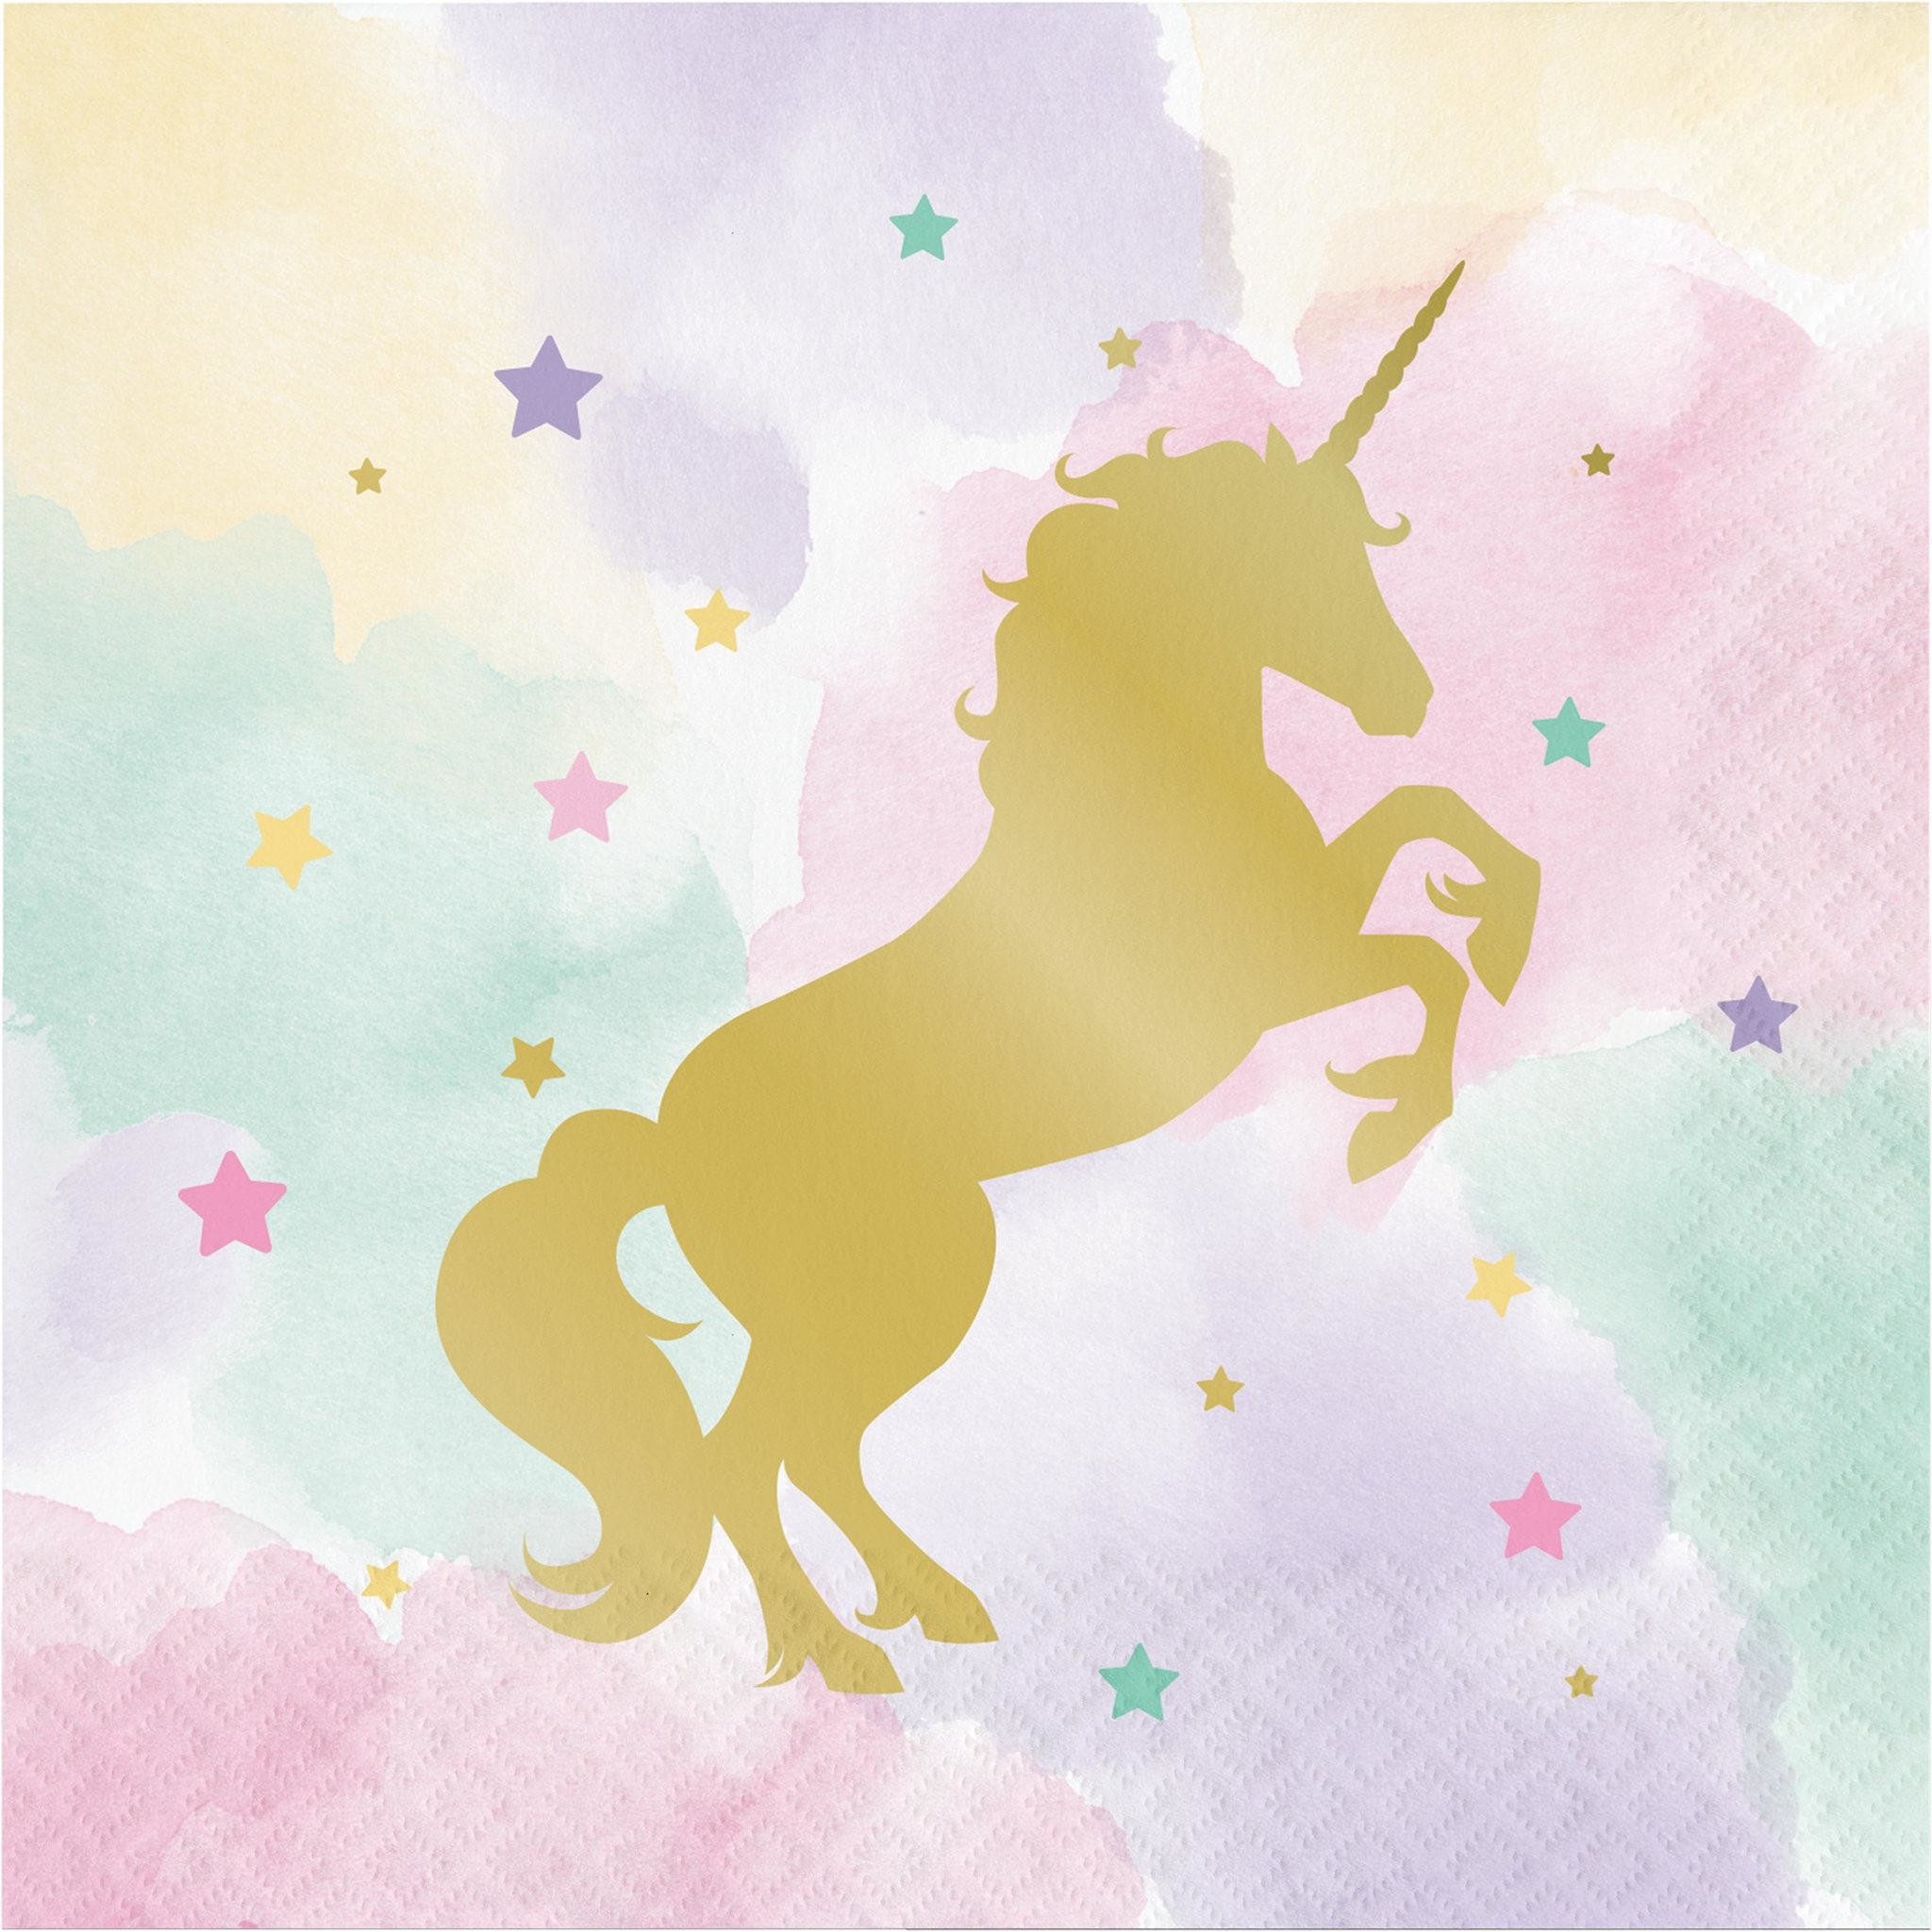 1242x2208 Kawaii Wallpaper Backgrounds Iphone Wallpapers Balayage Papo Unicorn Phone S